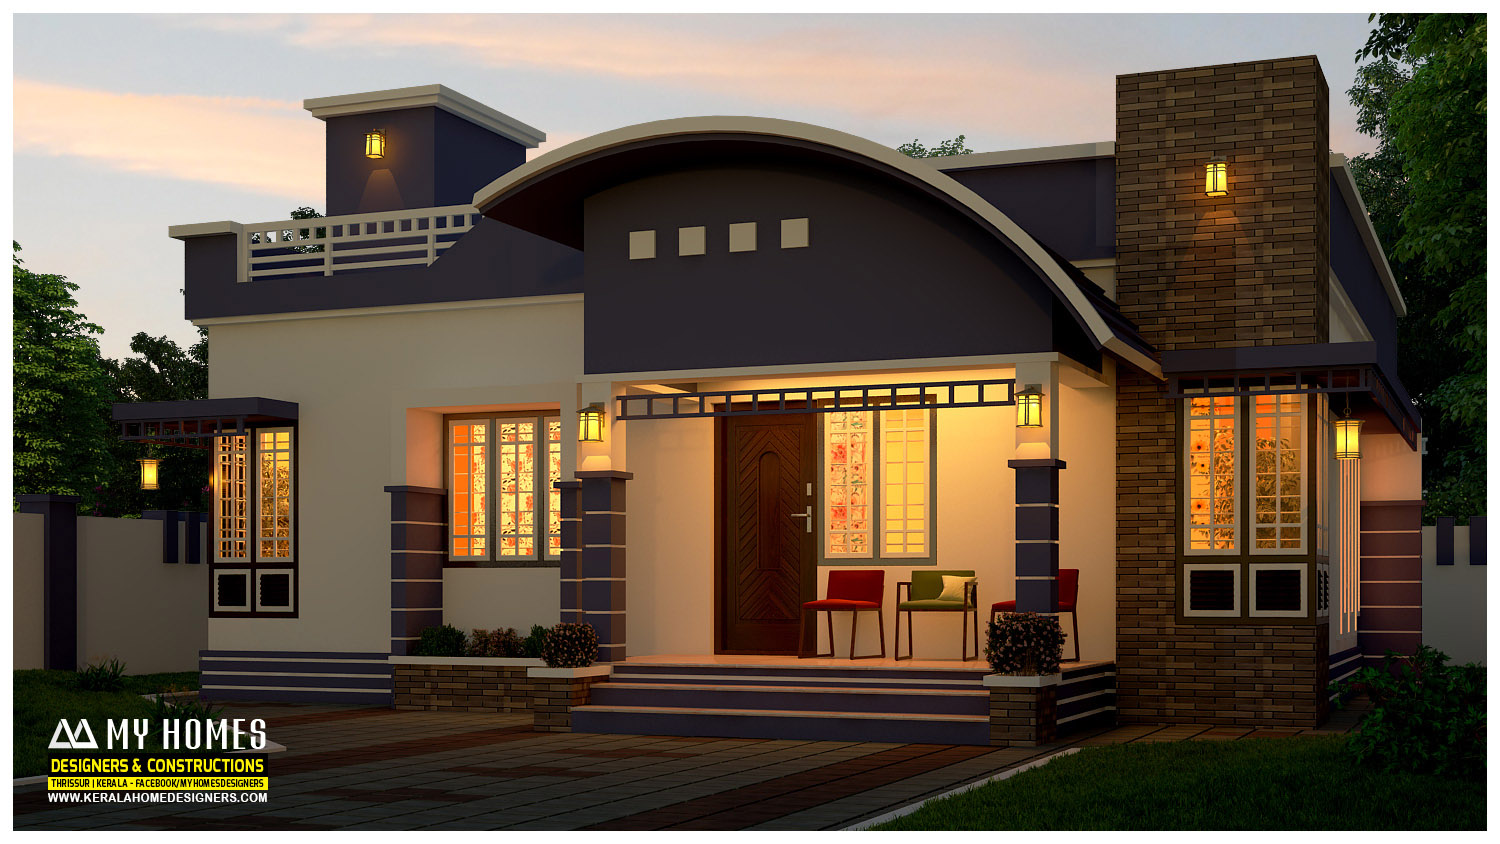 Low budget kerala home designers constructions company for Low cost home design